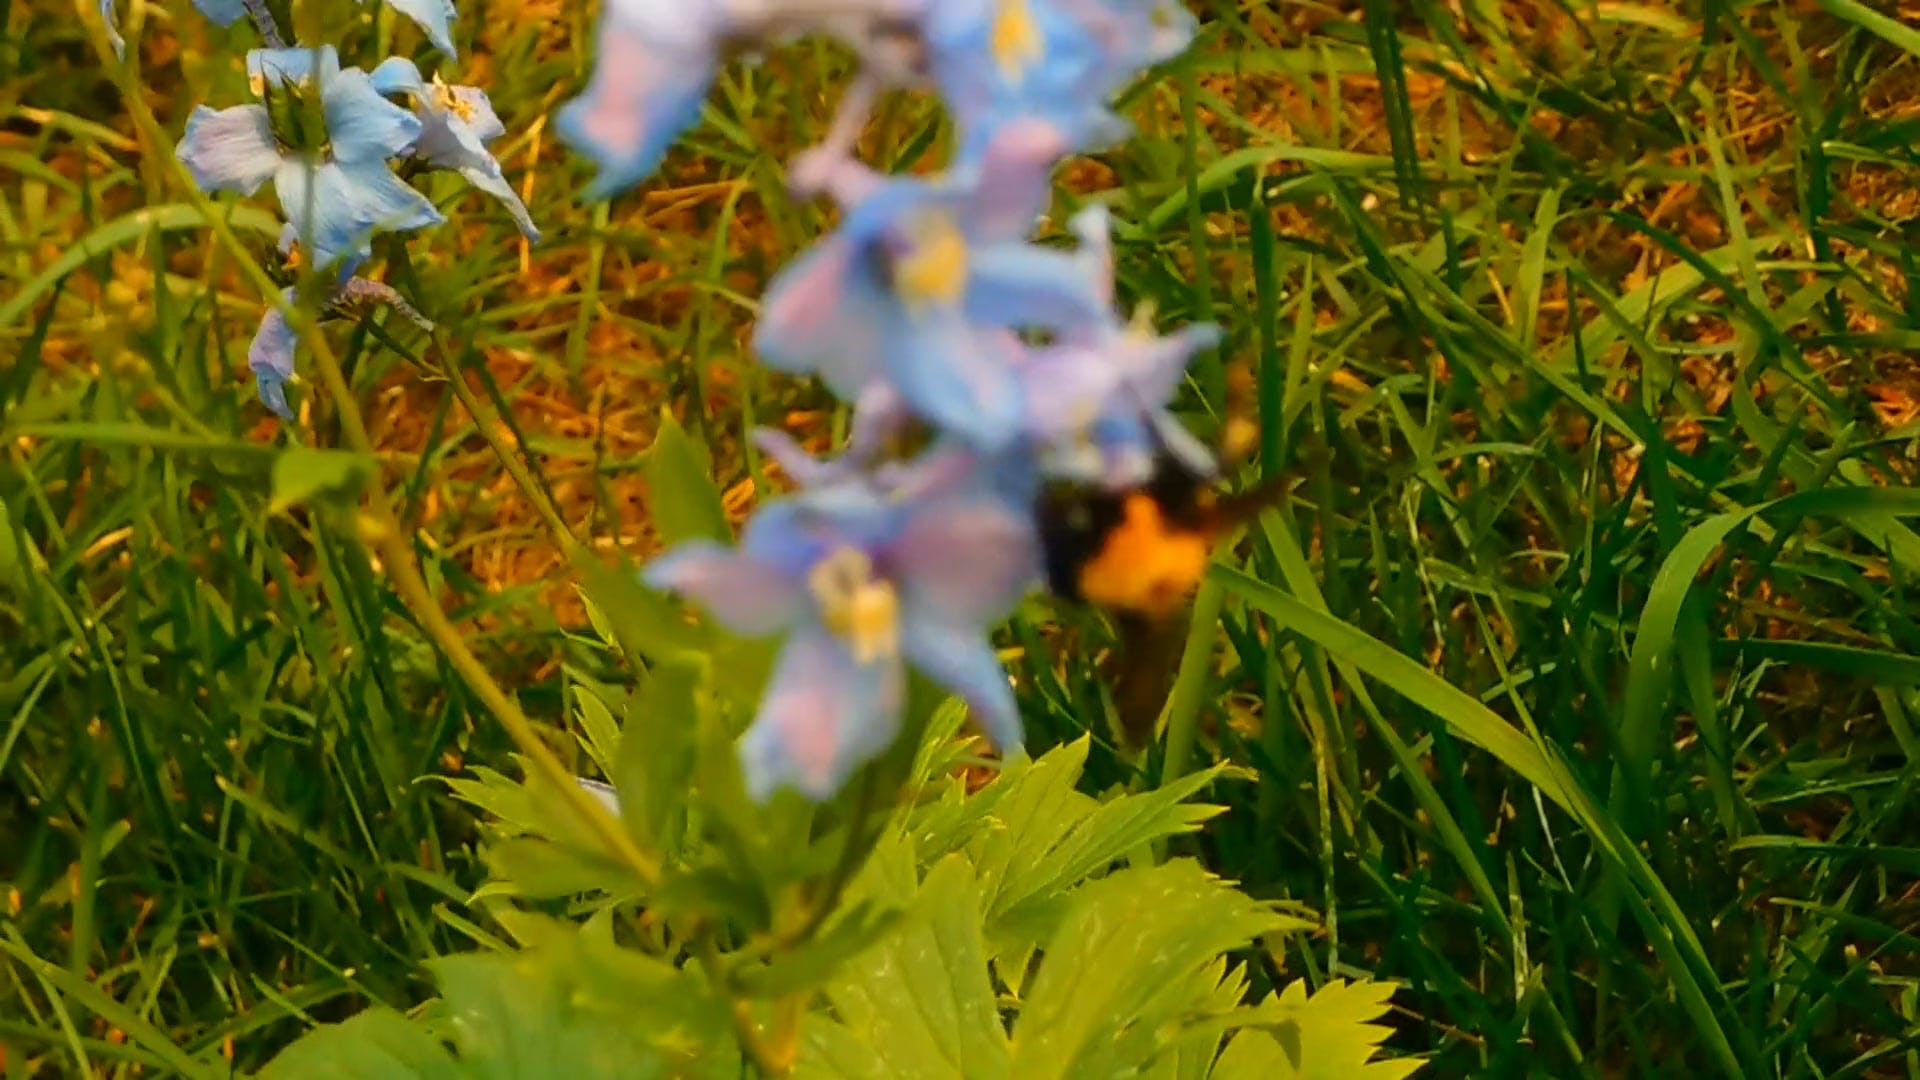 Bumble Bee And Pollination Of Flowers